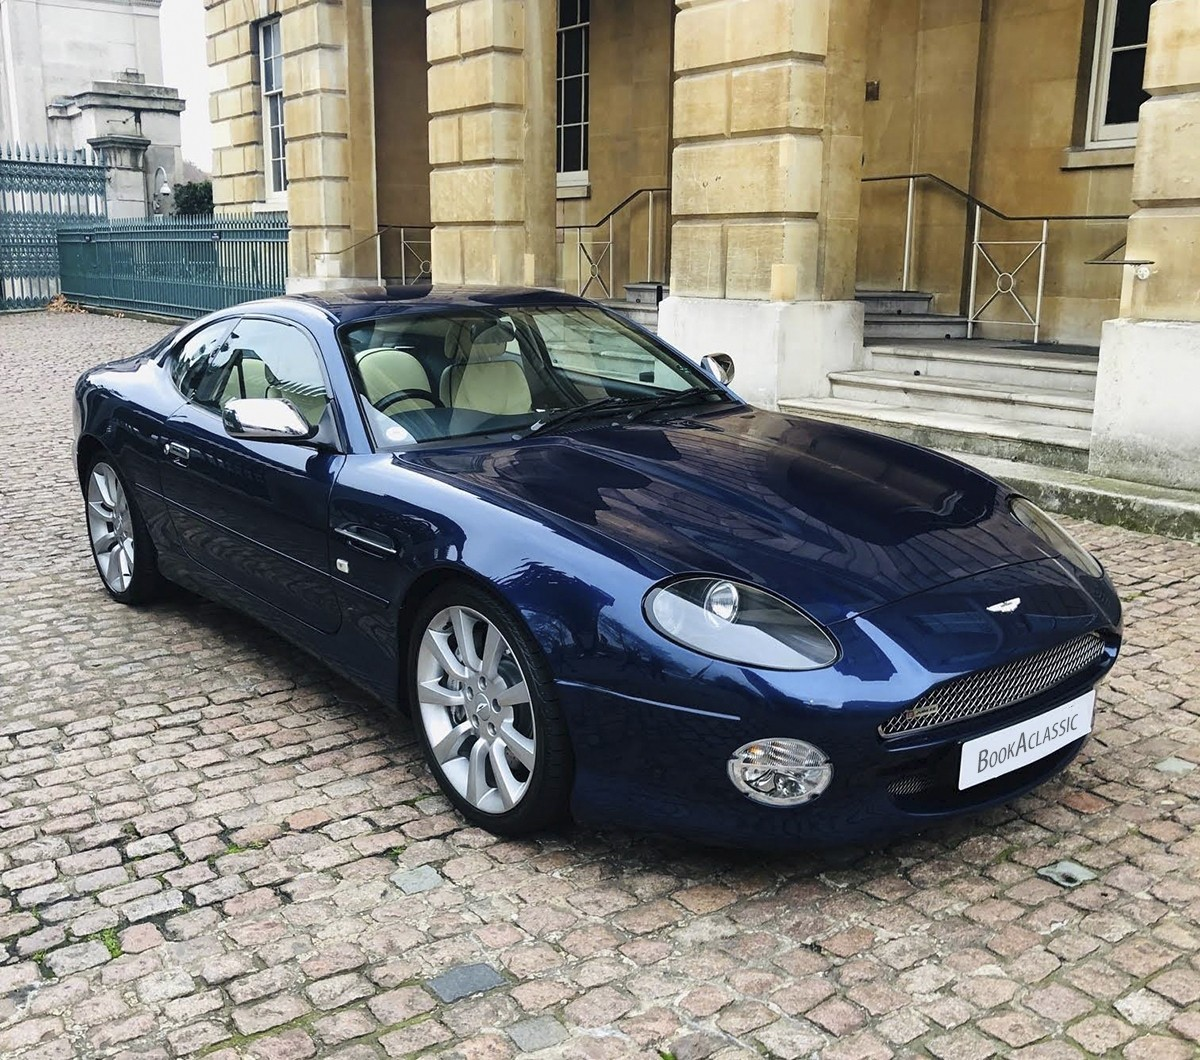 Aston Martin Db7 Stratstone Of Mayfair Limited Edition Hire London